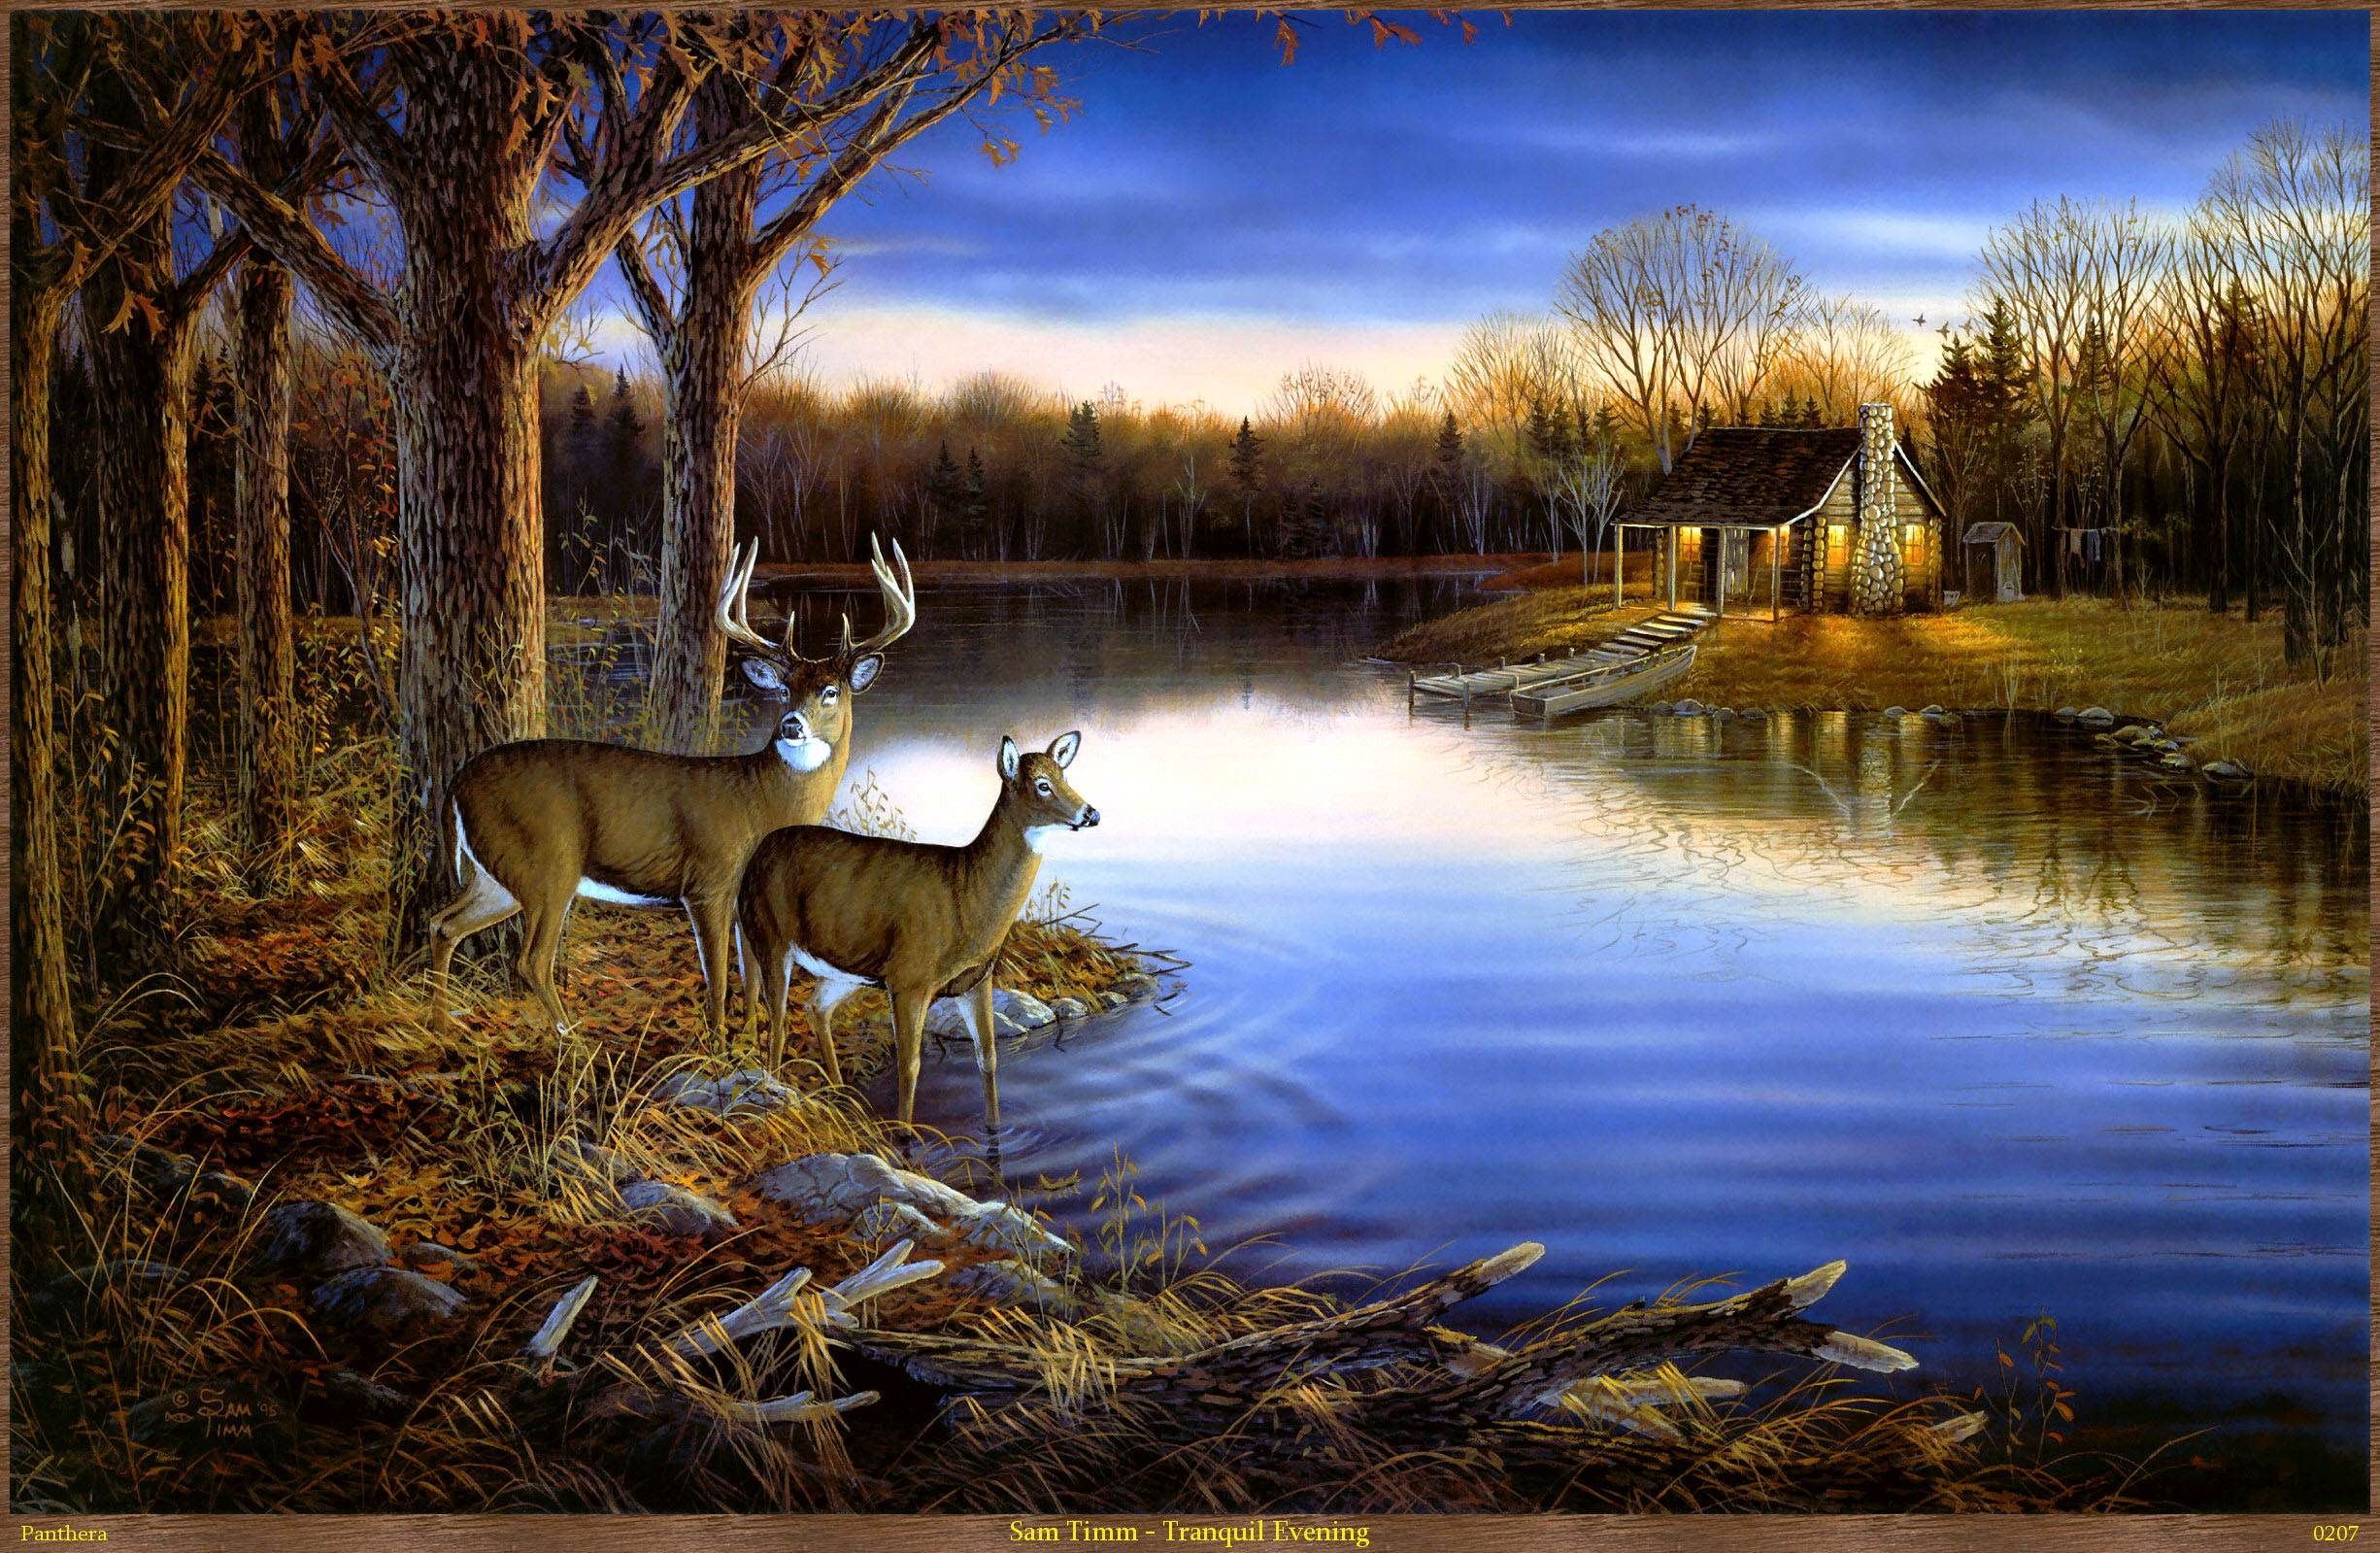 sunset photo with deer in them - Google Search